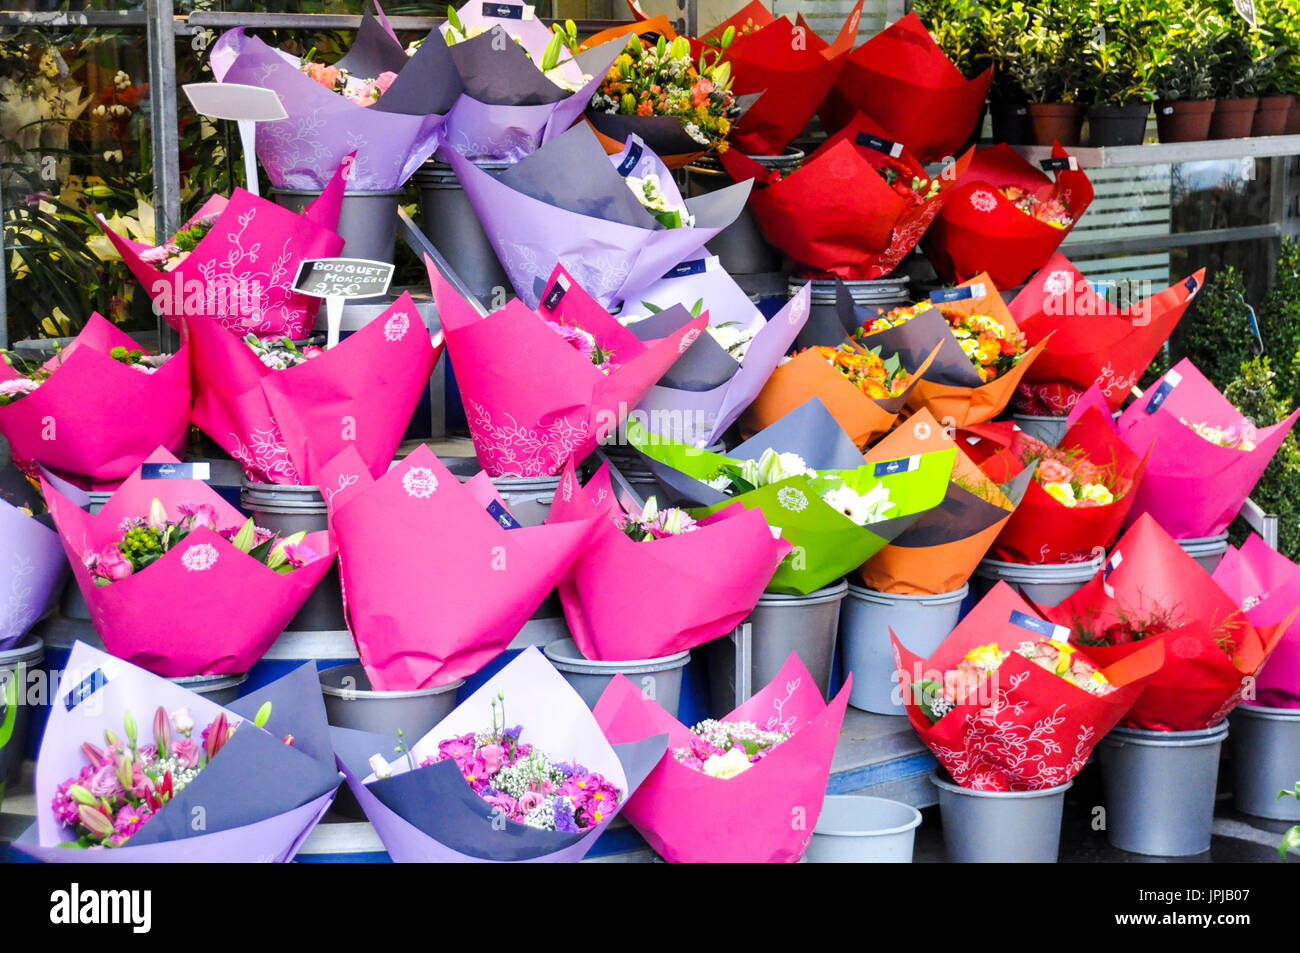 display-of-flowers-wrapped-in-colourful-paper-in-front-of-a-florist-JPJB07.jpg